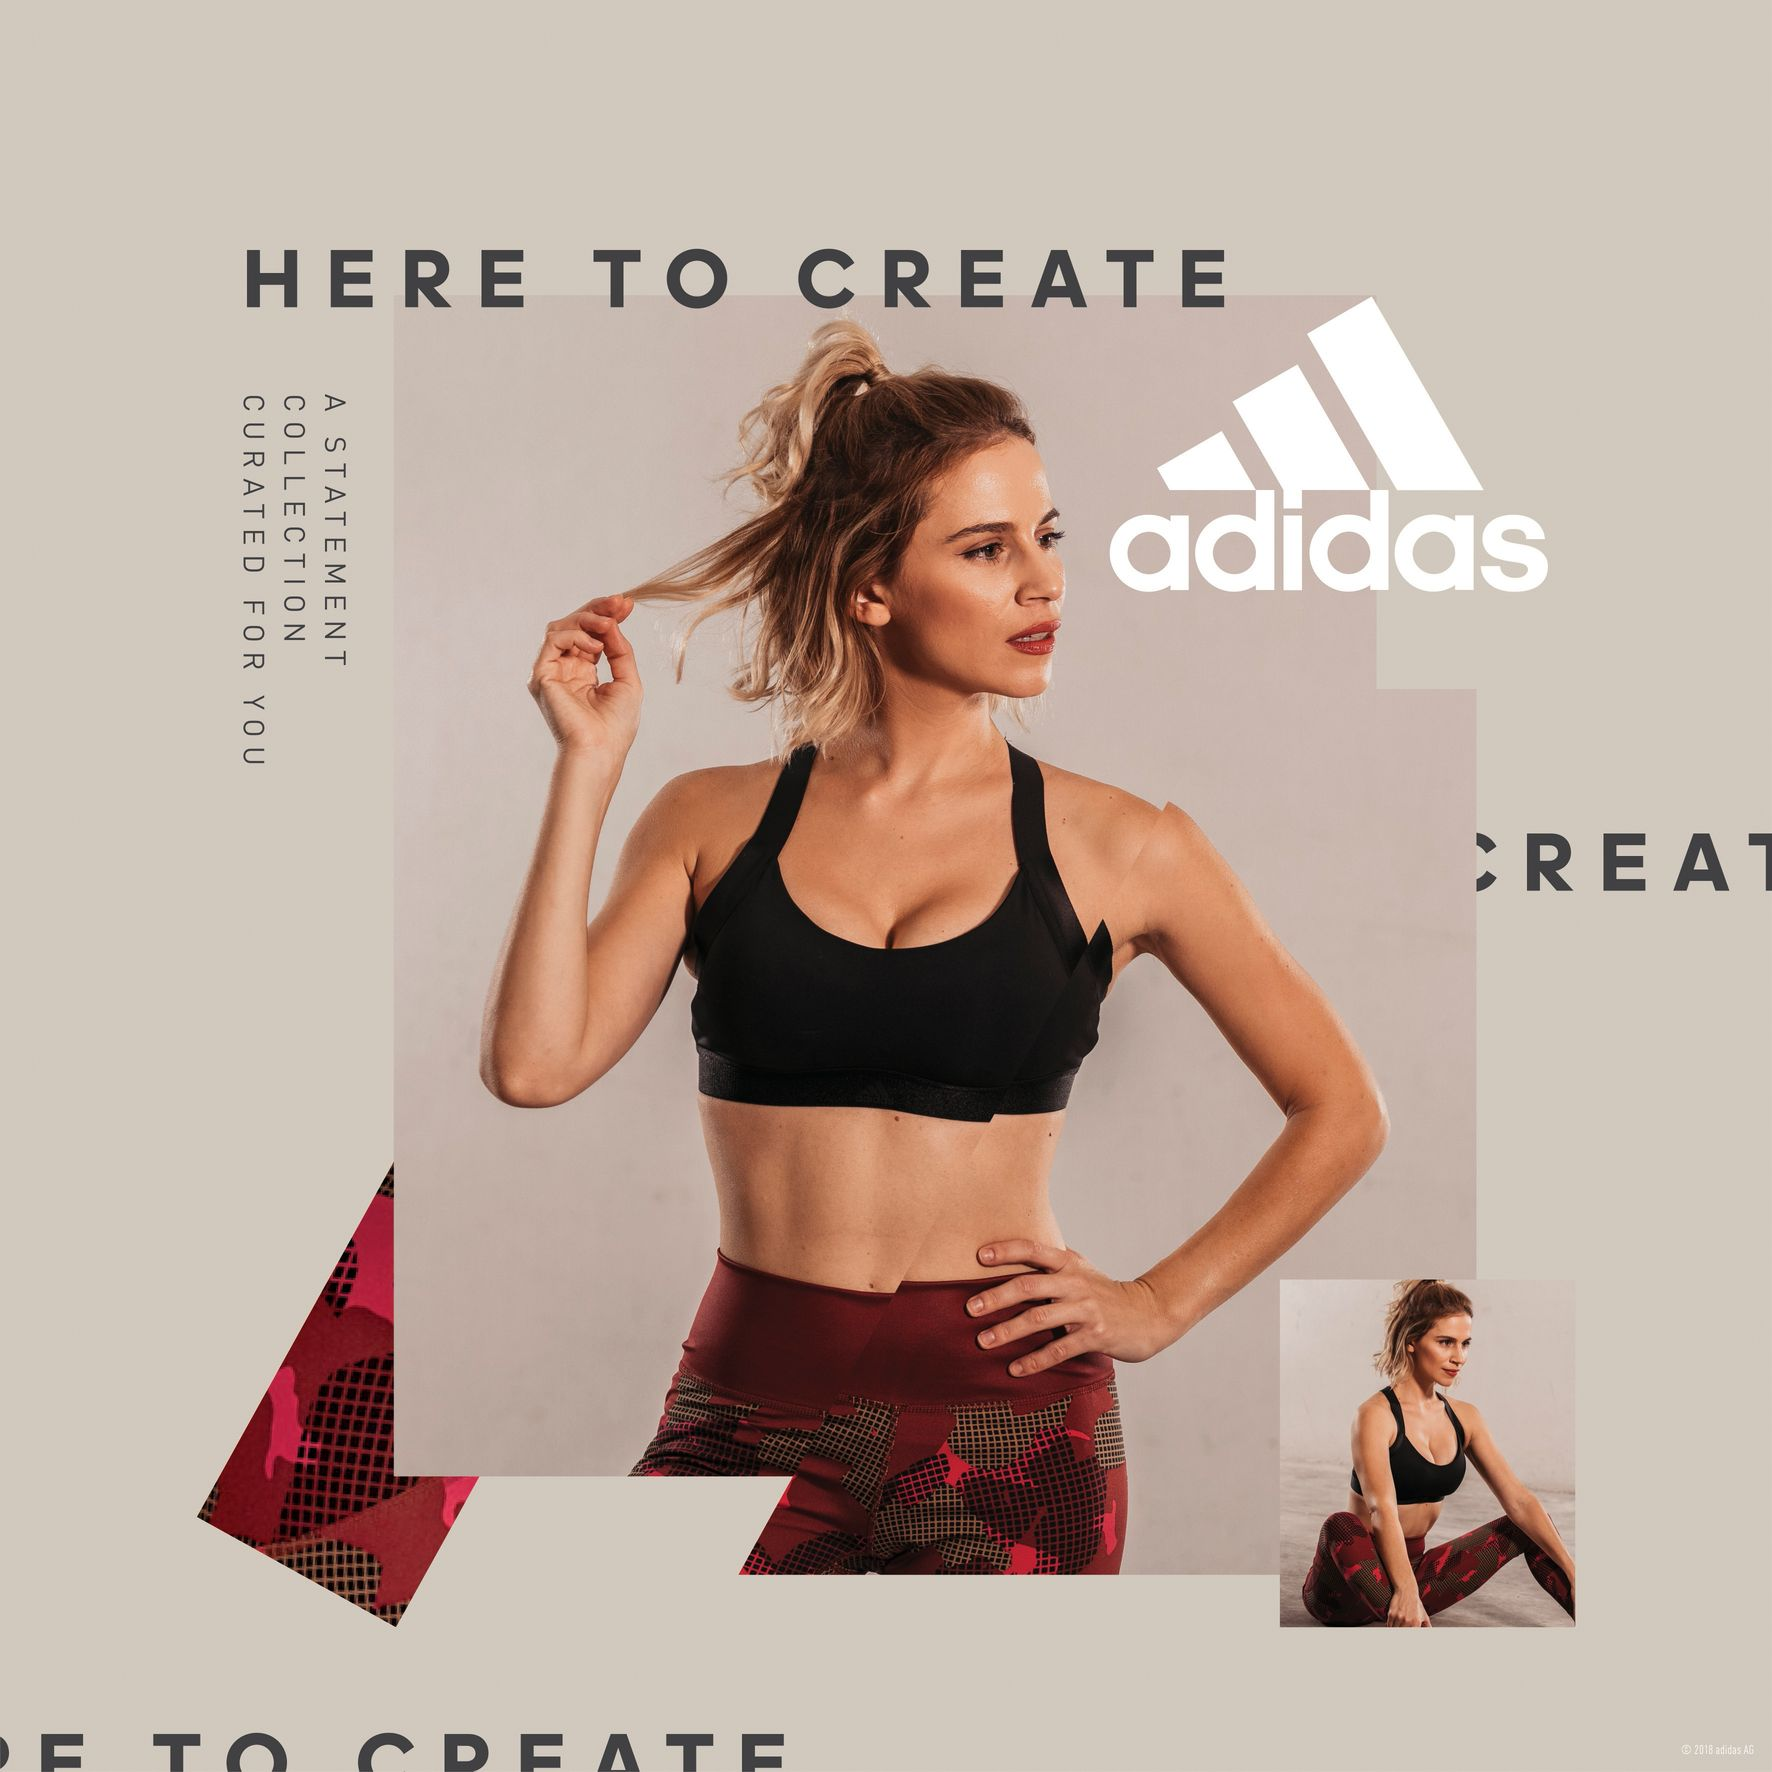 Adidas Women Statement Collection - Nadia Boule